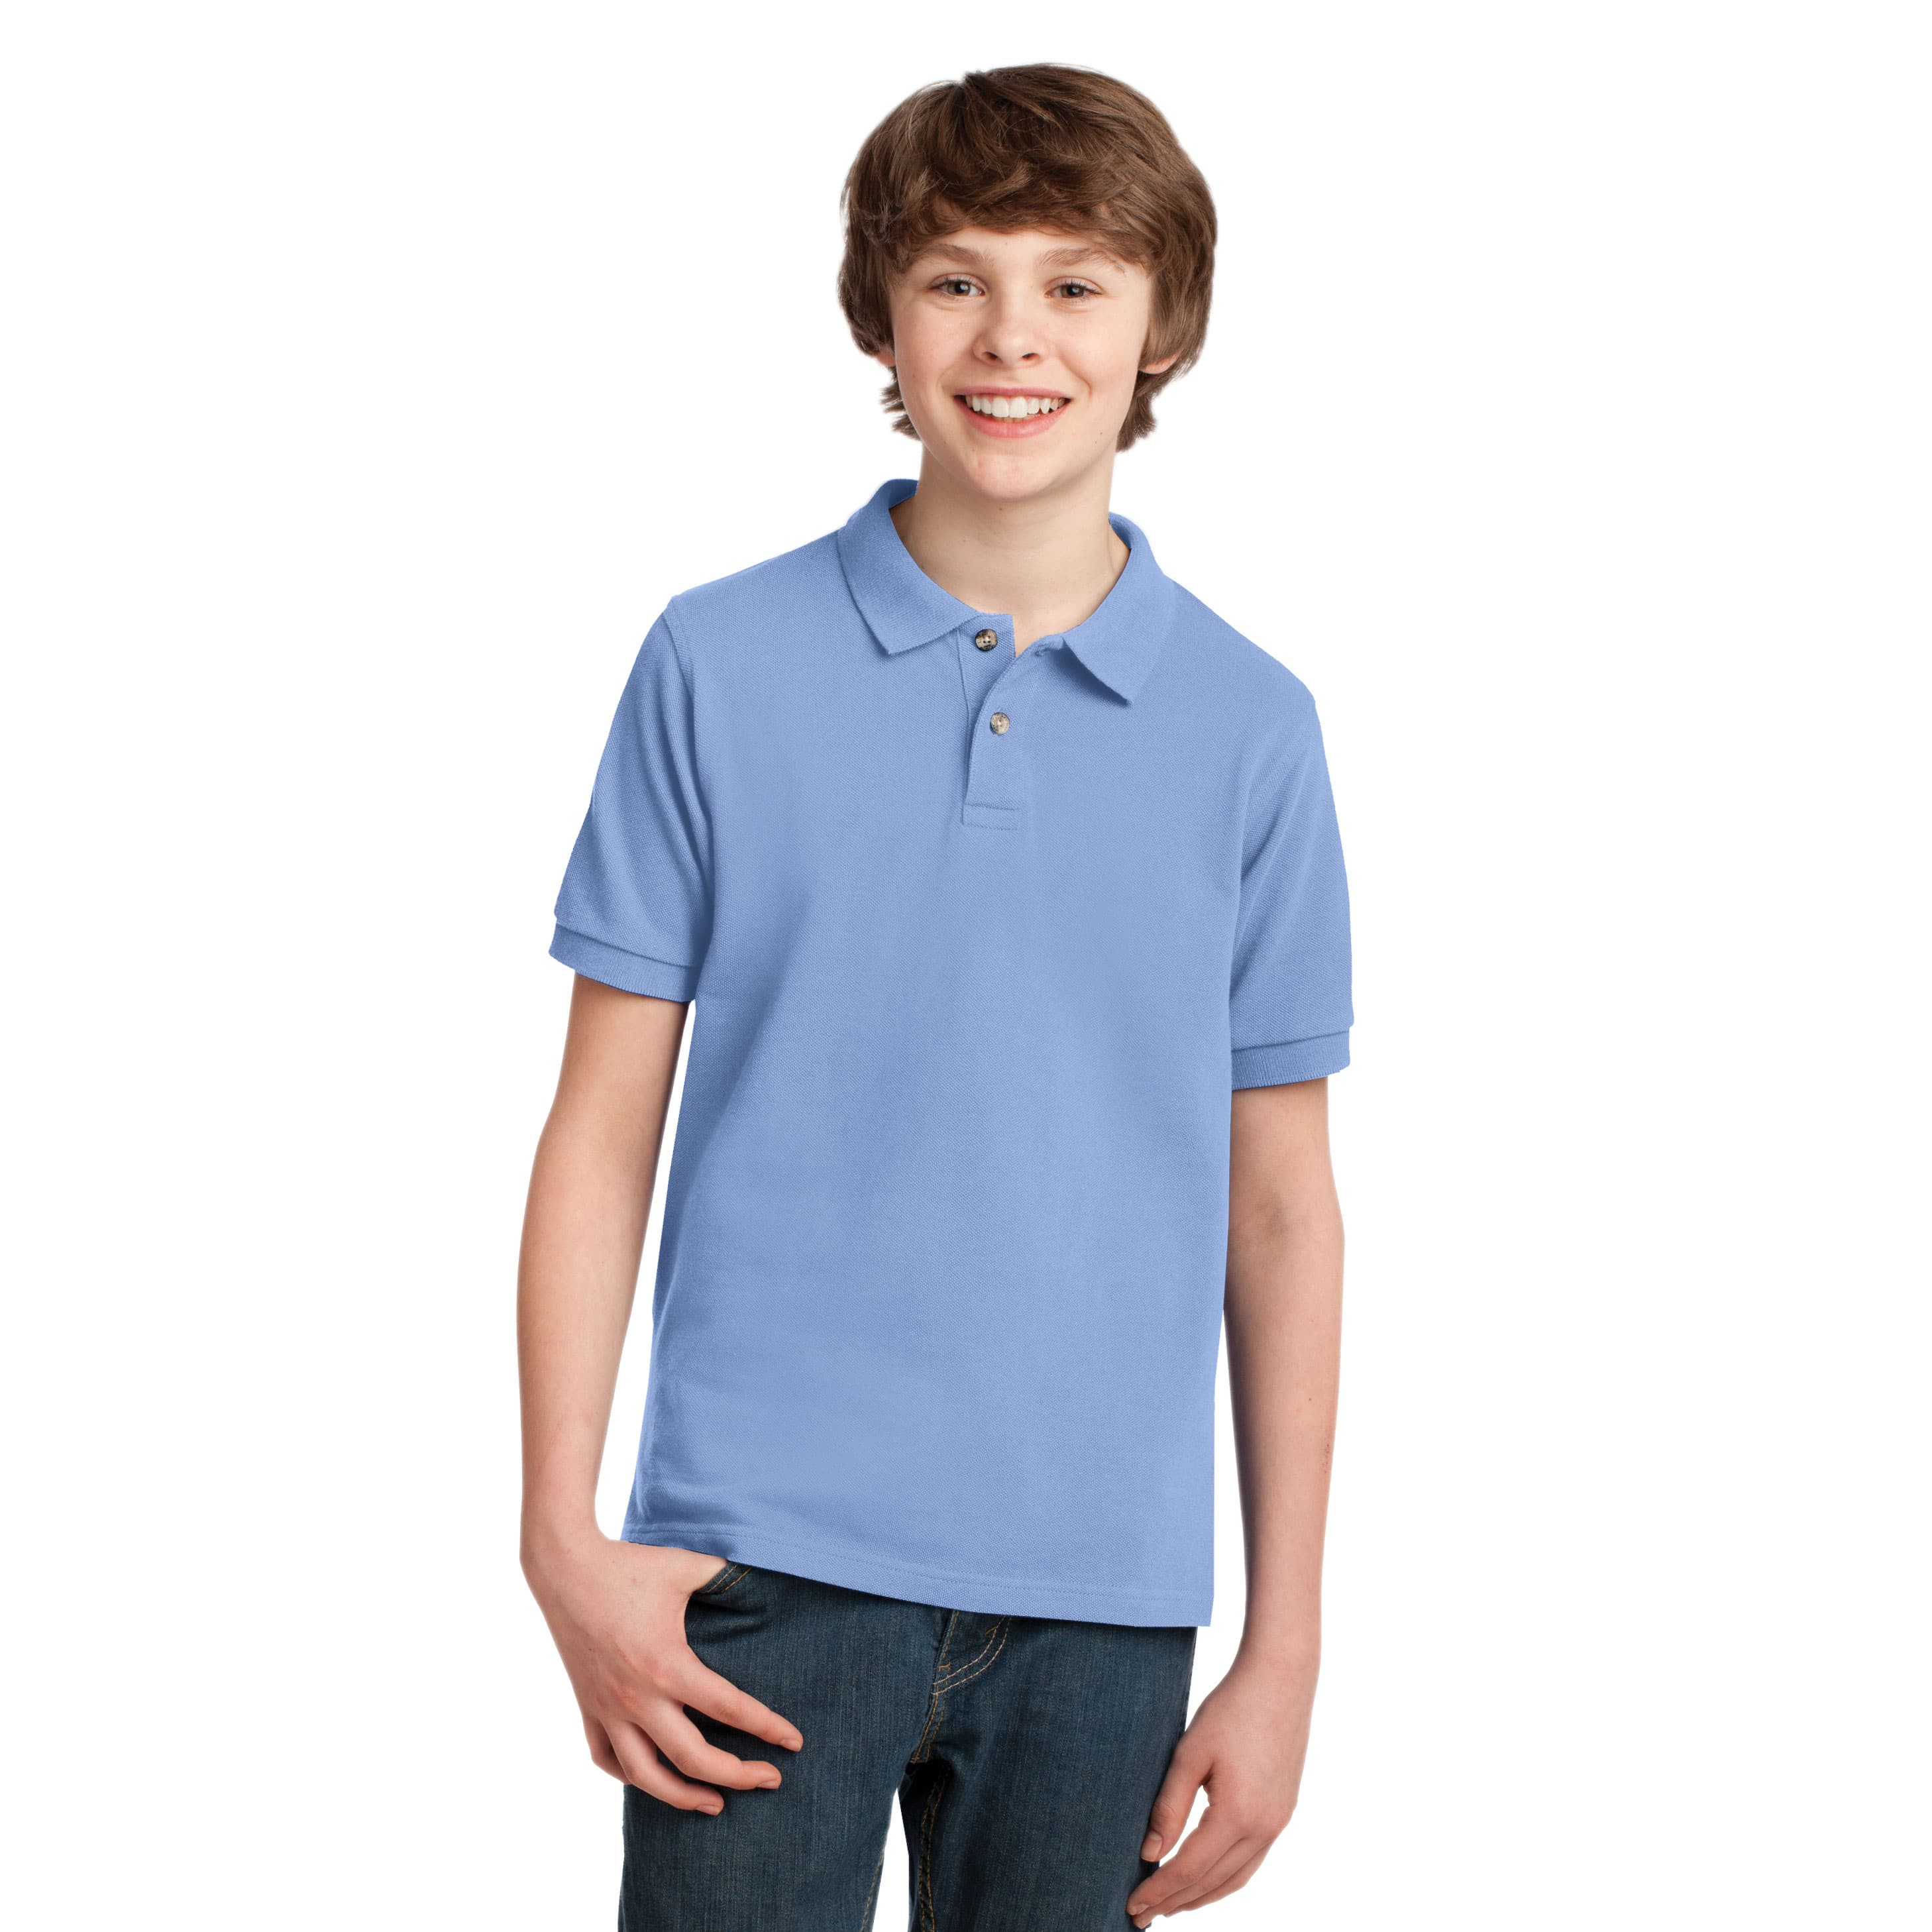 Youth knit pique polo shirt port authority custom for Cheap polo shirts embroidered